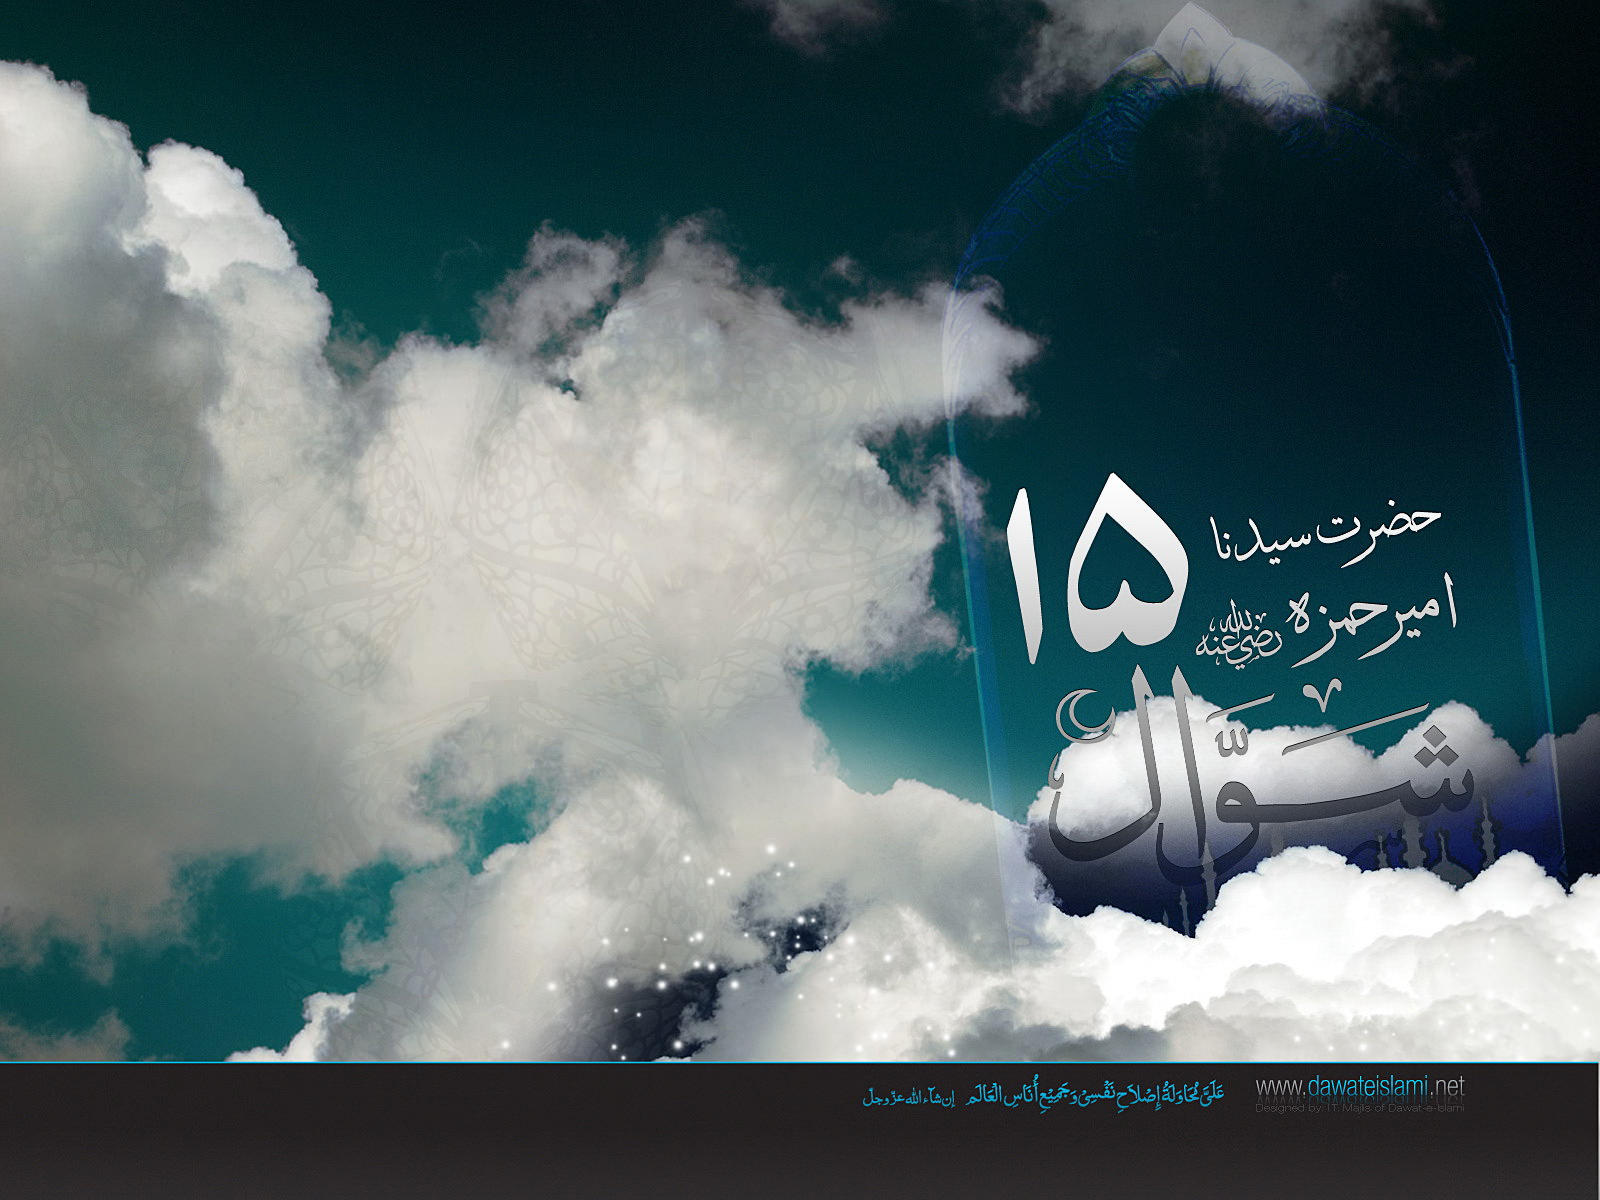 Wallpapers Faizan-e-Ameer Hamza 1